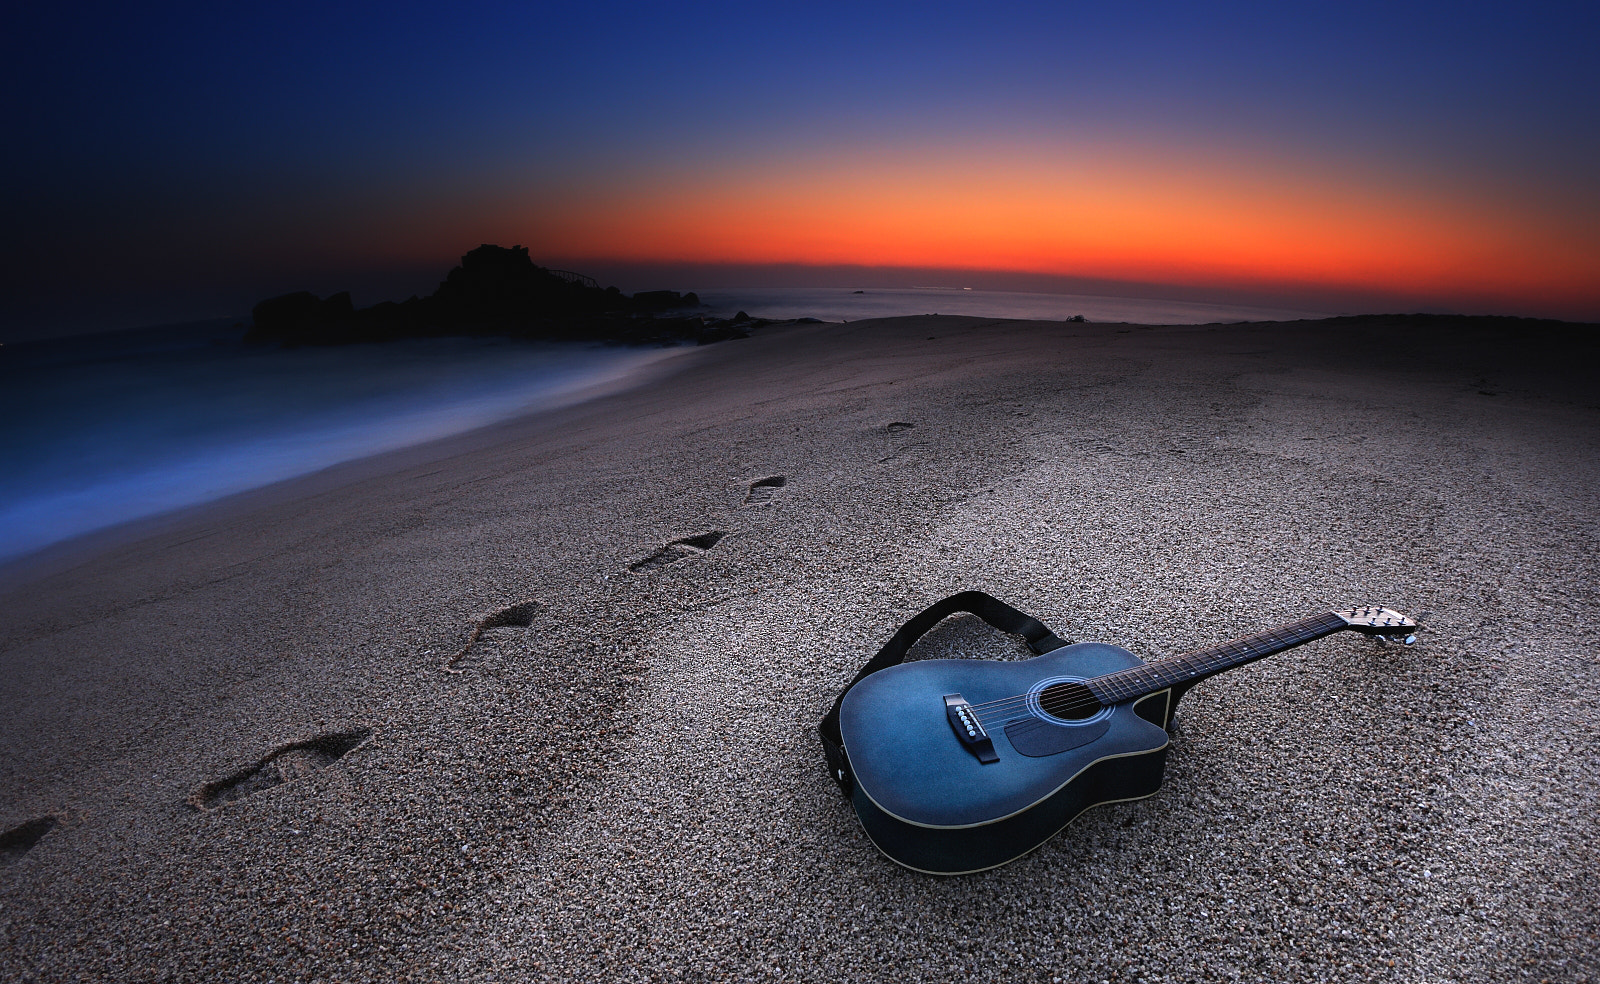 Photograph sweet song like u by CHANG SARAH on 500px